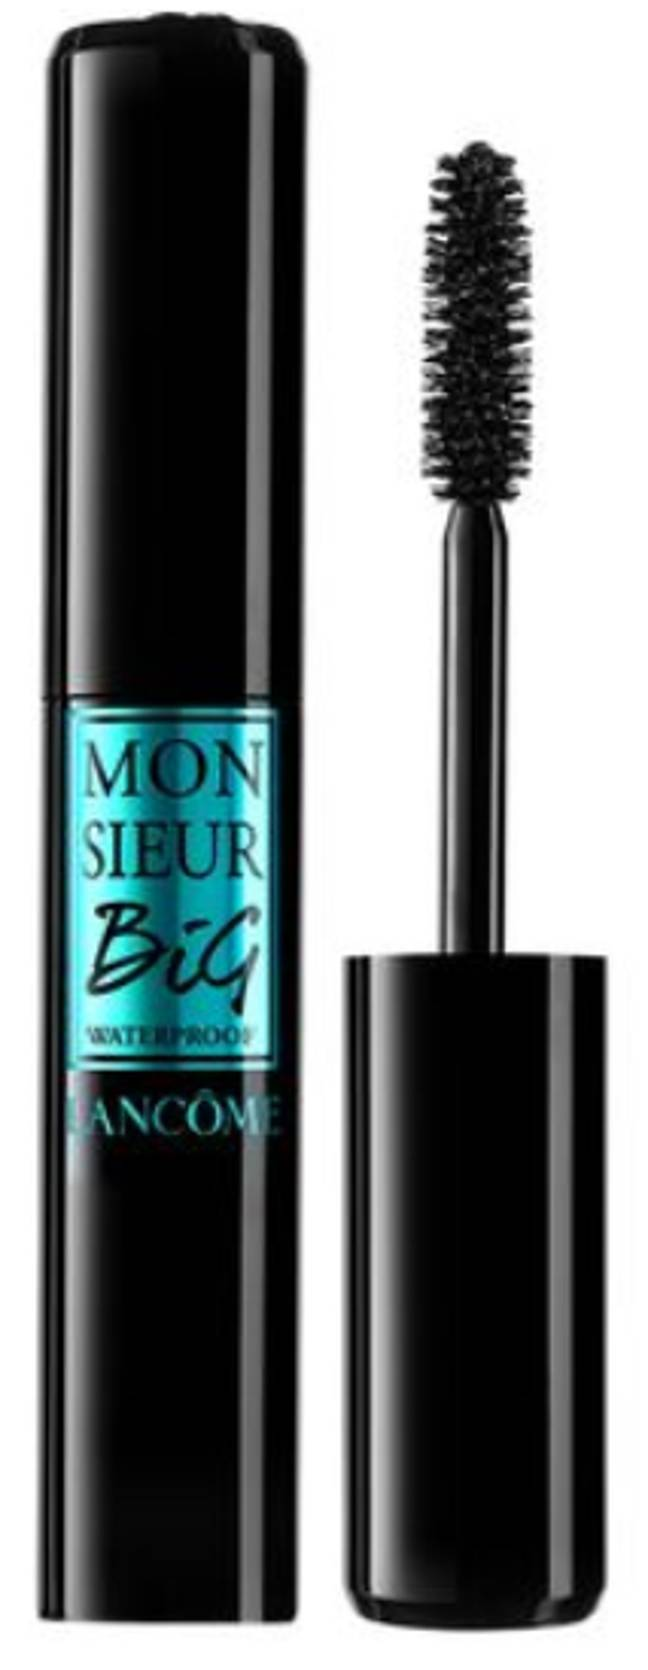 The mascara has rave reviews online. Credit: Lancome